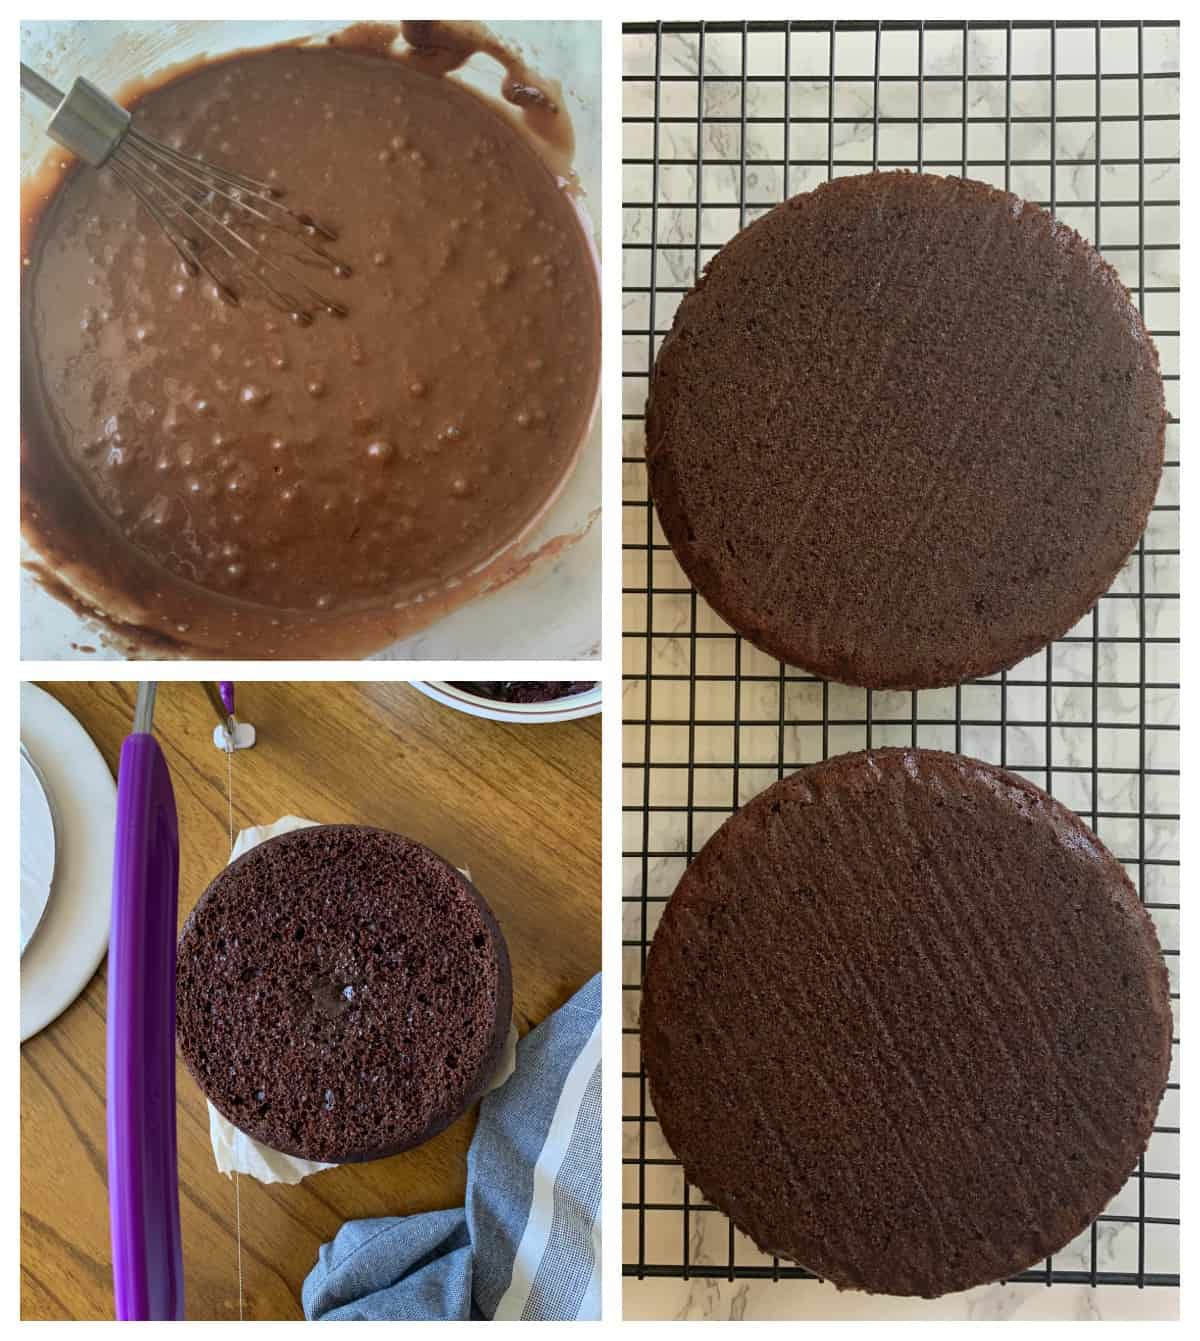 Steps in making the chocolate cake base